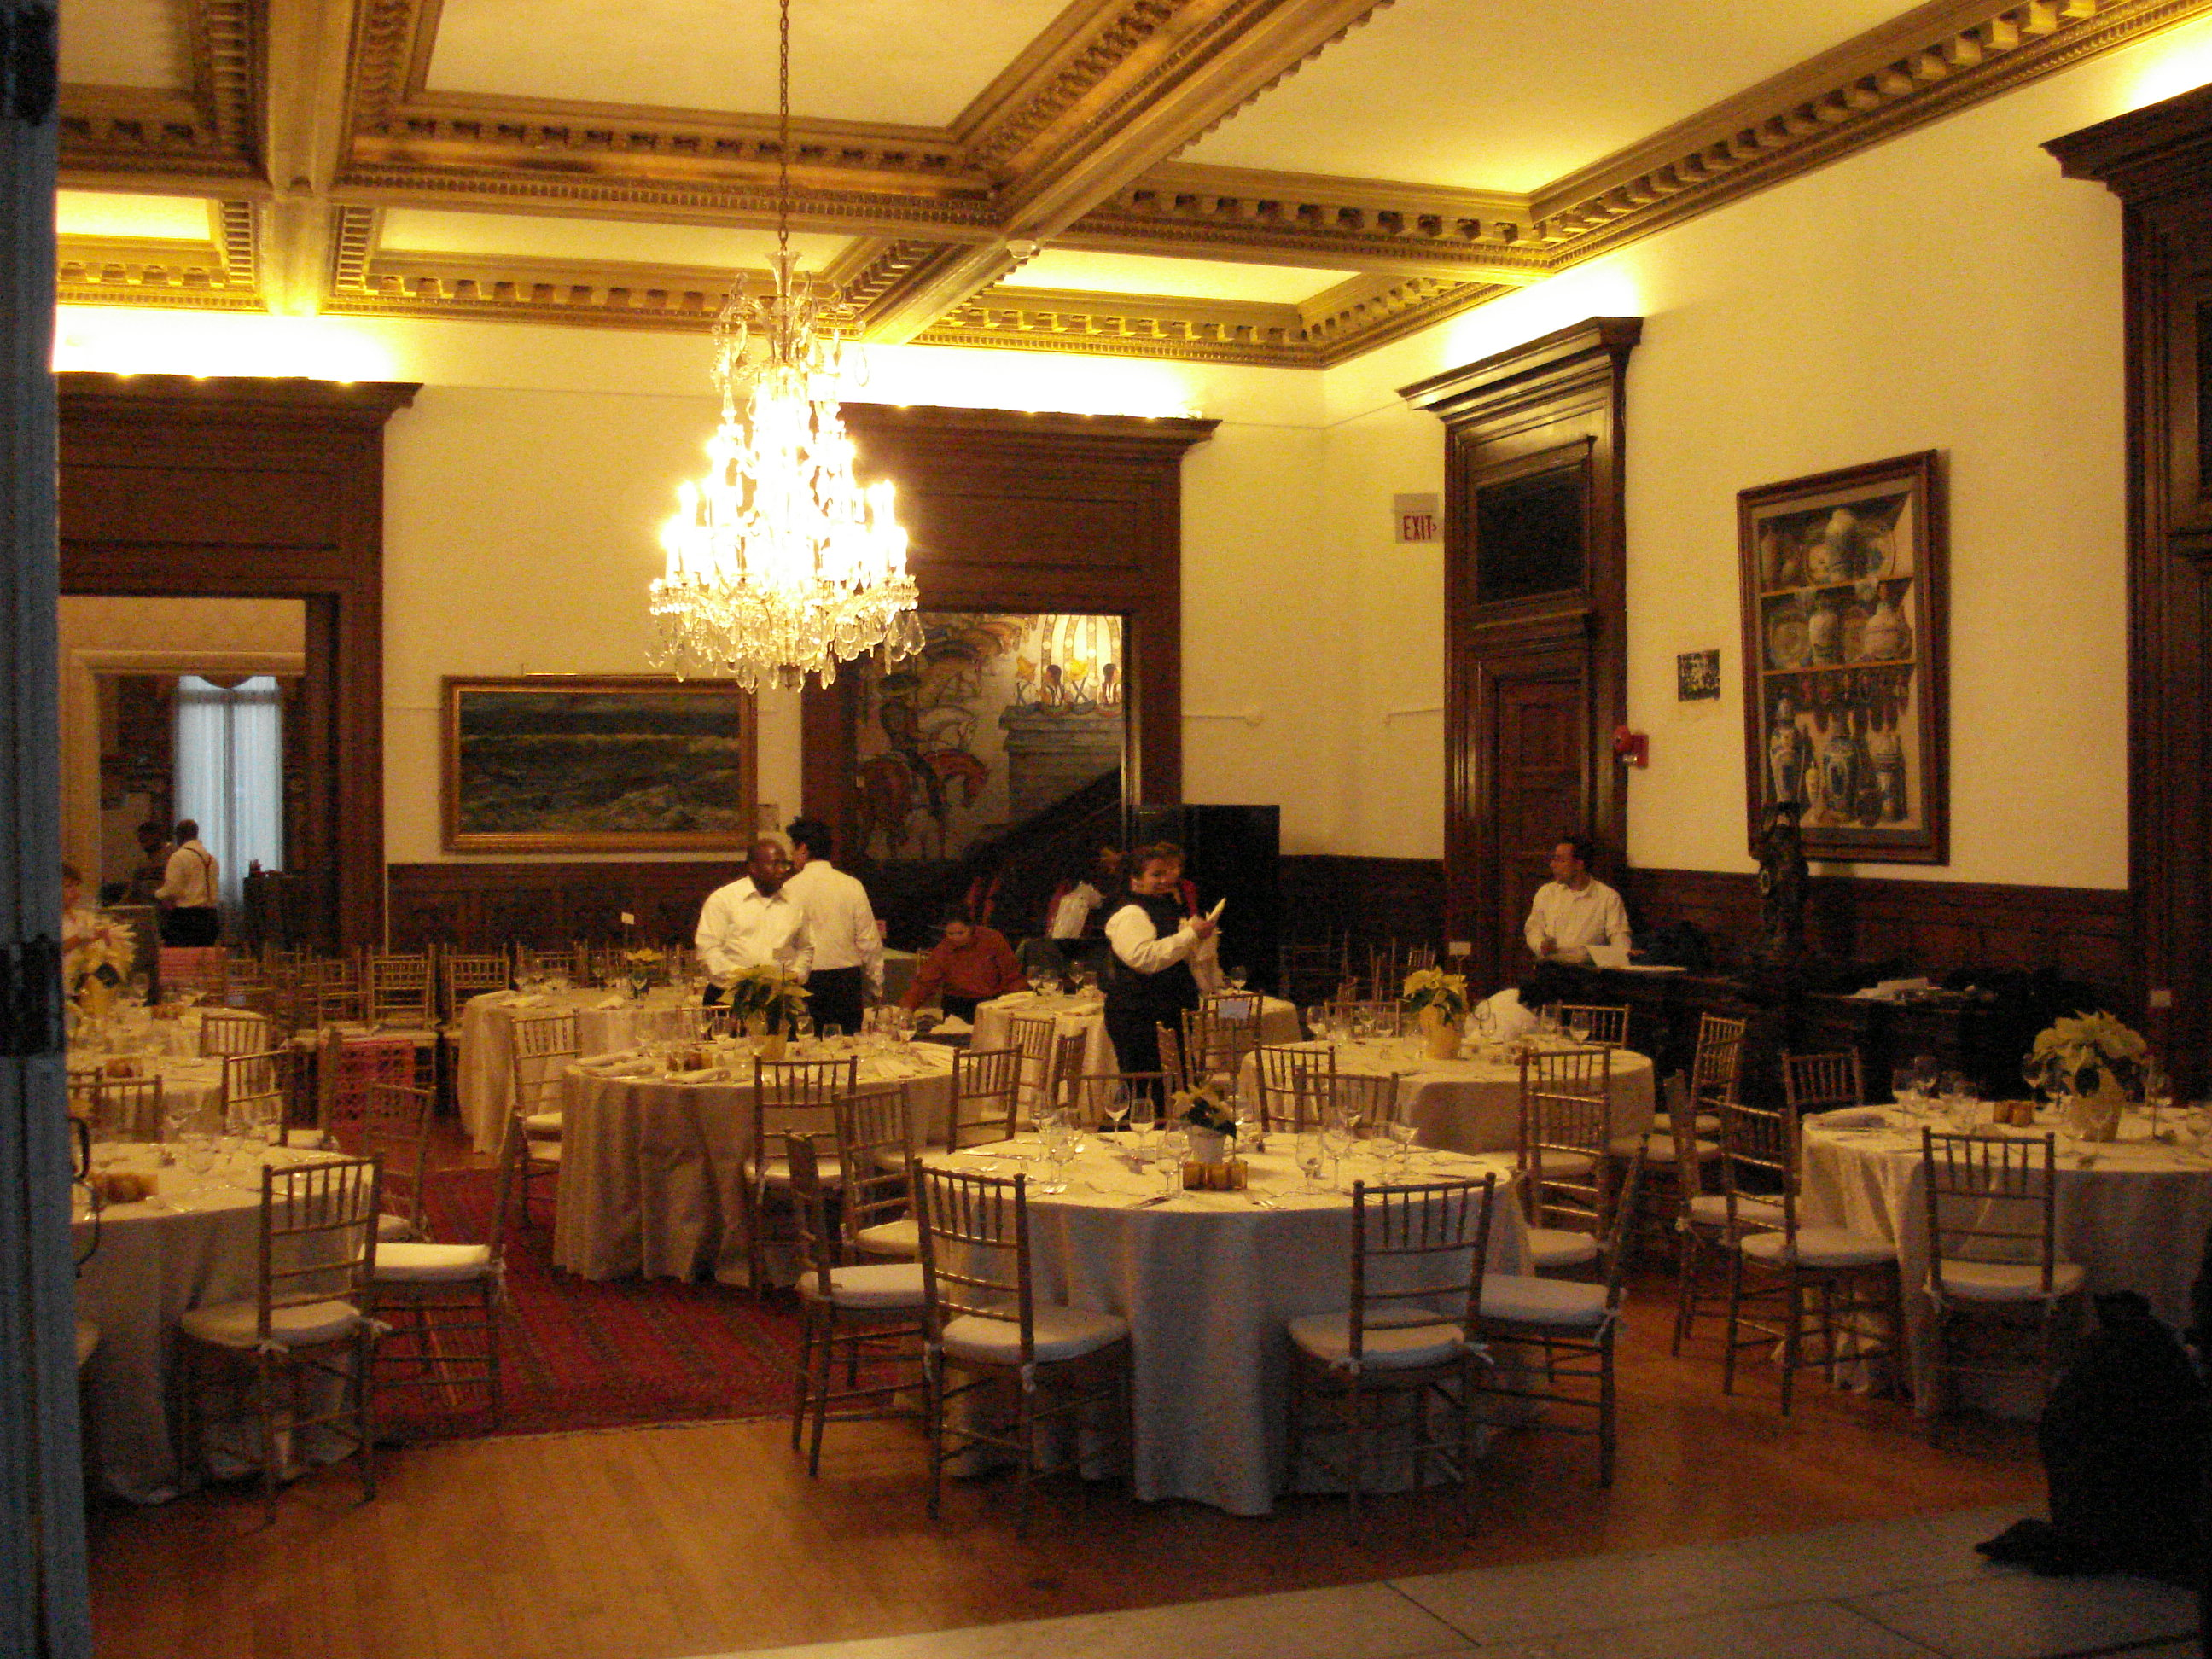 Main ballroom, looking back into the hallway.